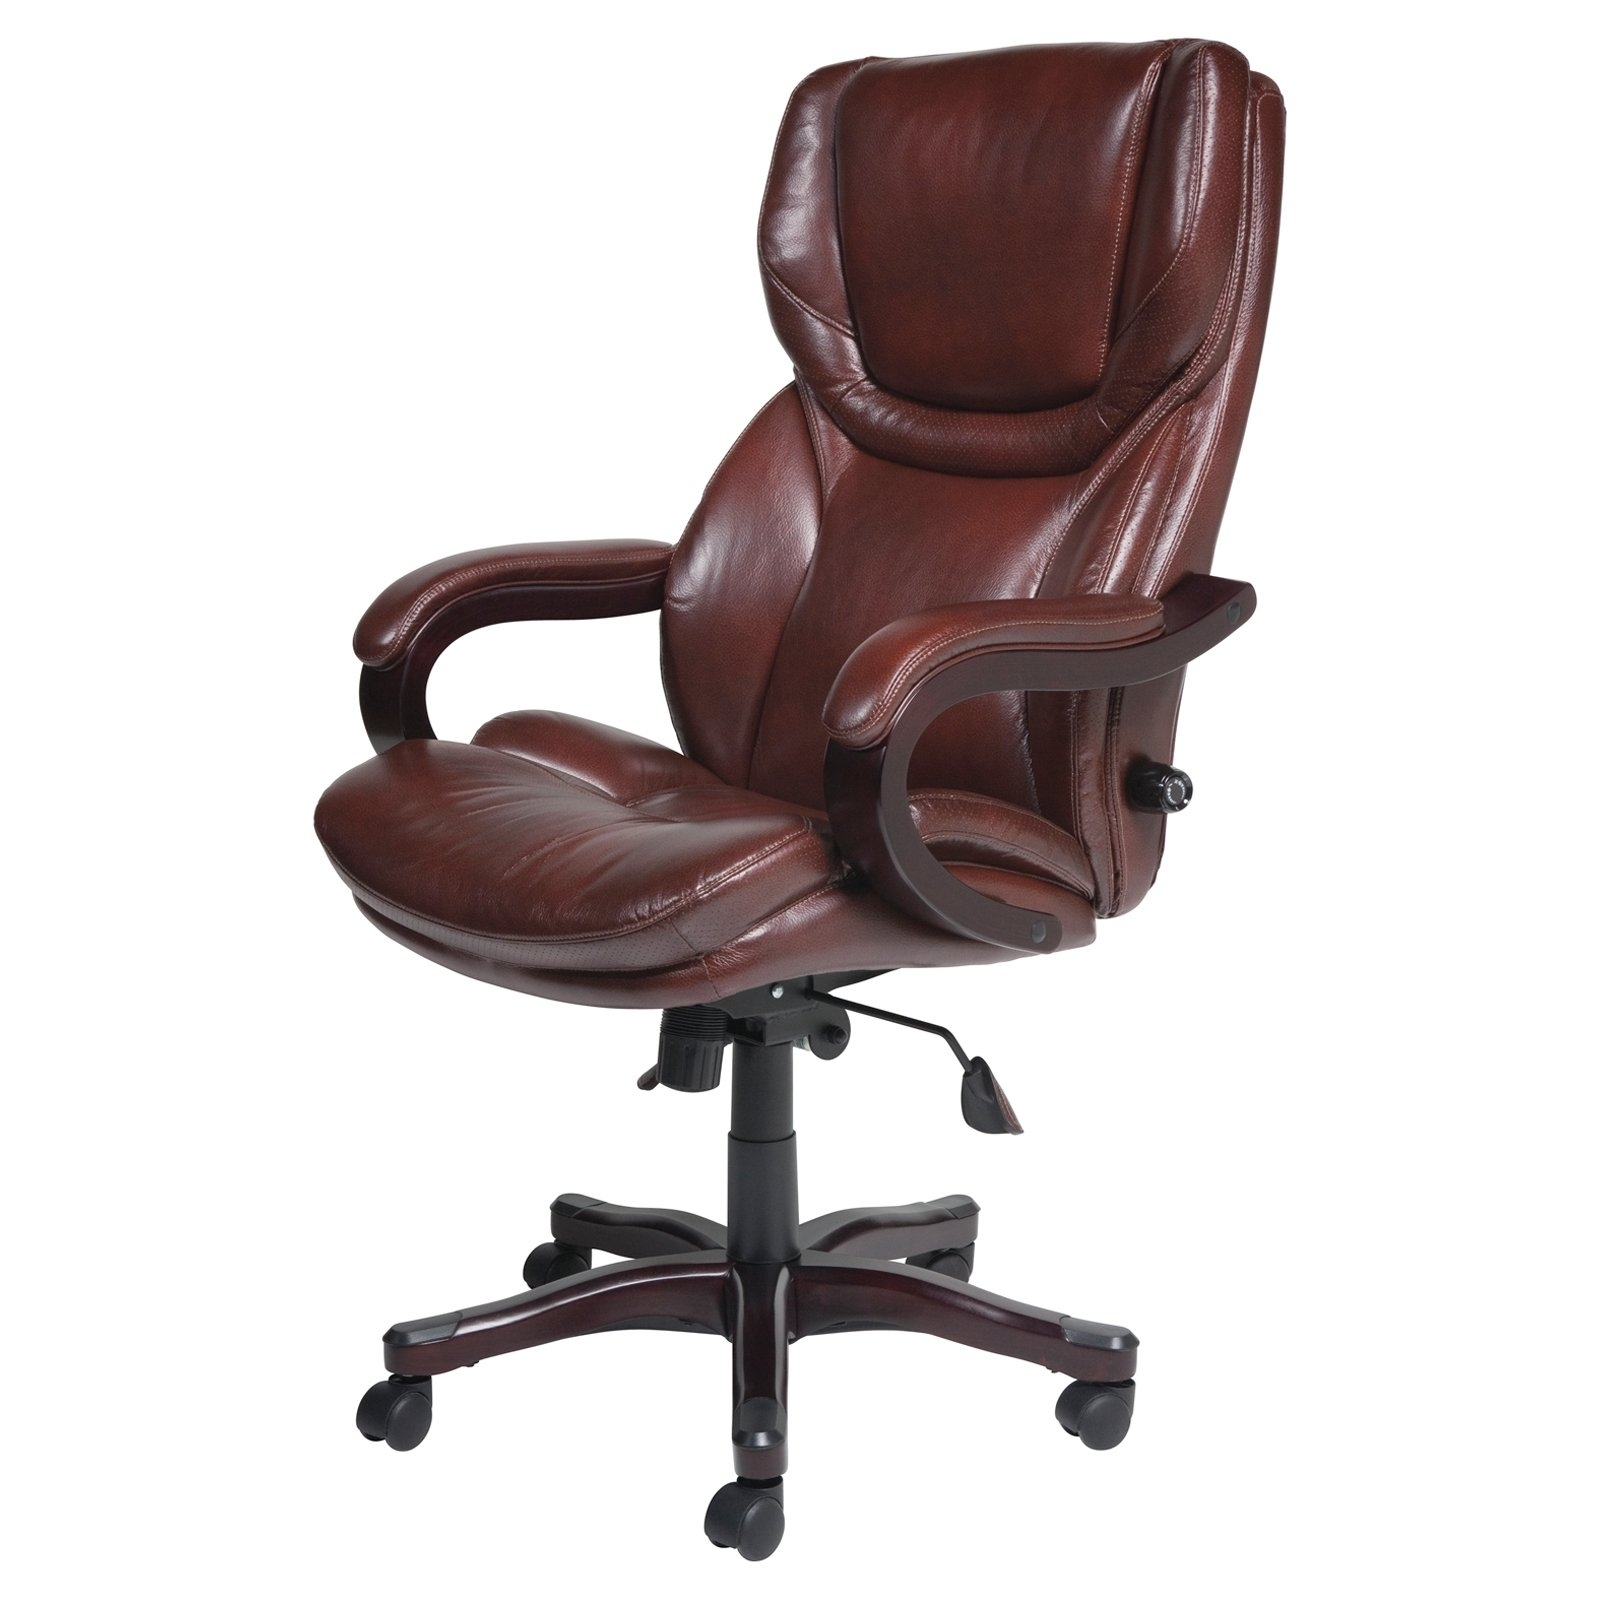 2018 Chair : Ergonomic Black Leather Executive Office Chair Verona Throughout Ergonomic Executive Office Chairs (View 13 of 20)